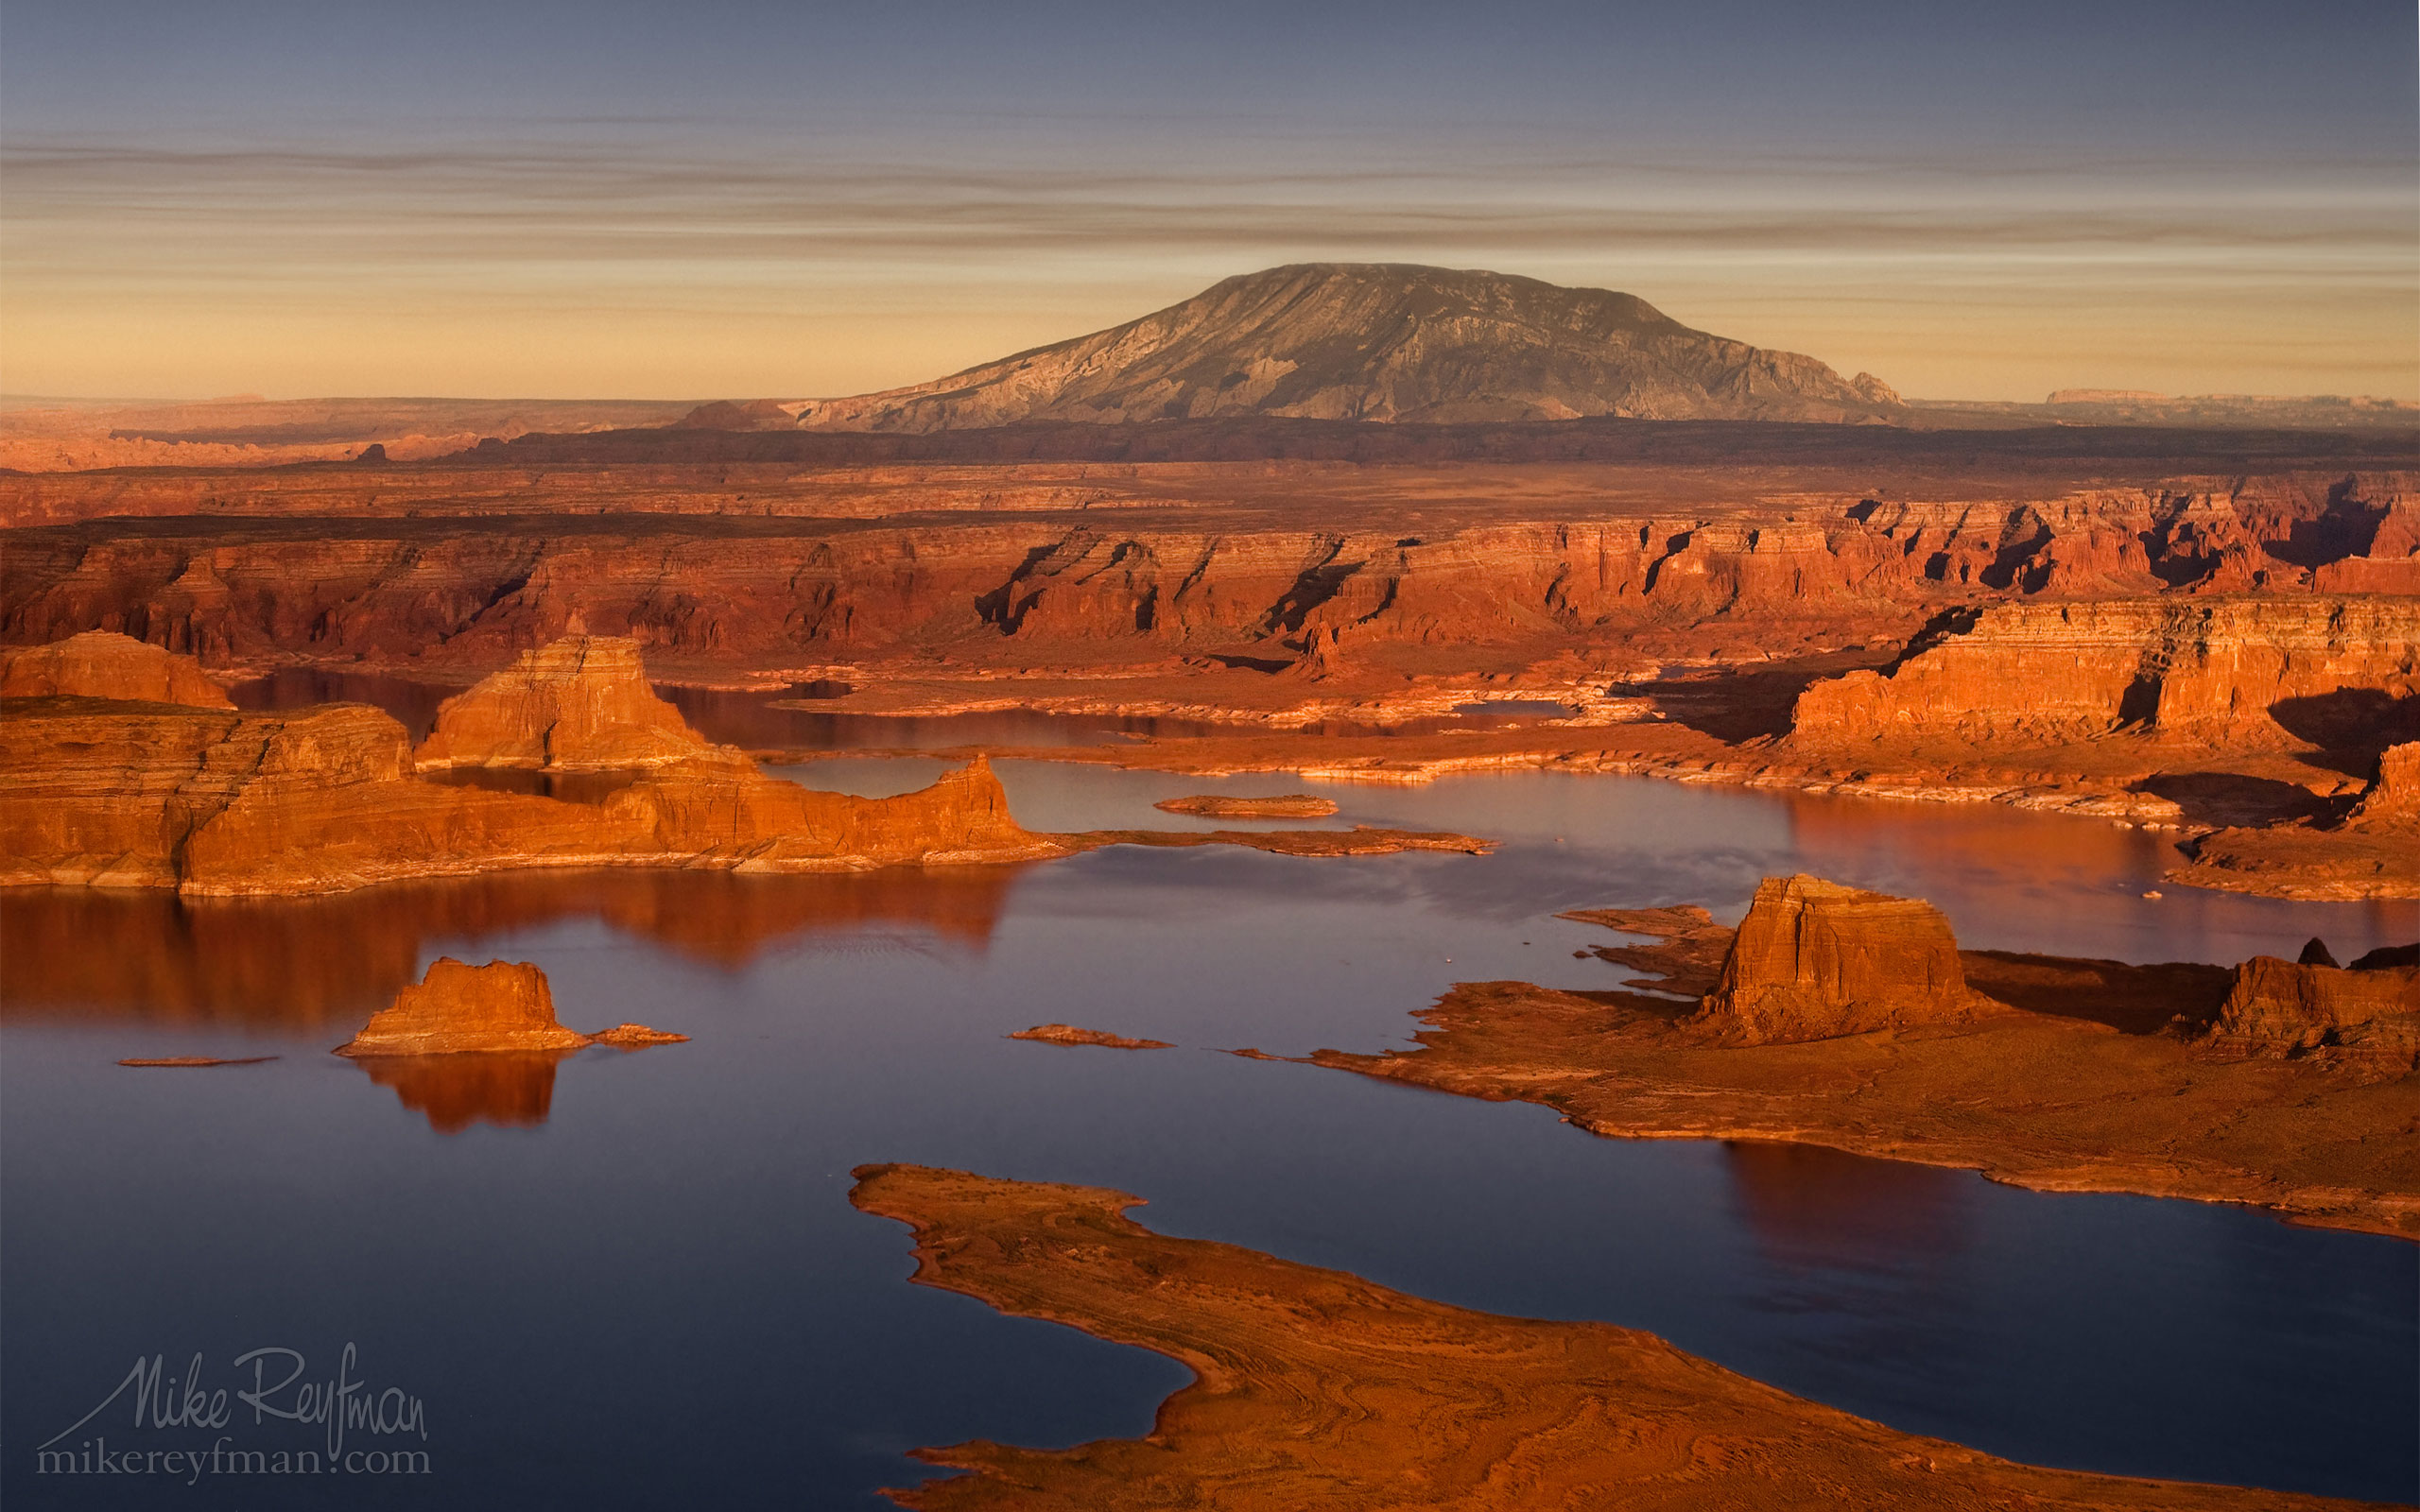 Lake Powell and Navajo Mountain. Glen Canyon NRA, Utah/Arizona, USA. Aerial. 025-LP3_DSC0271.jpg - Lake Powell, Glen Canyon NAR. Colorado and Sun Juan Rivers. Utah/Arizona, USA  - Mike Reyfman Photography